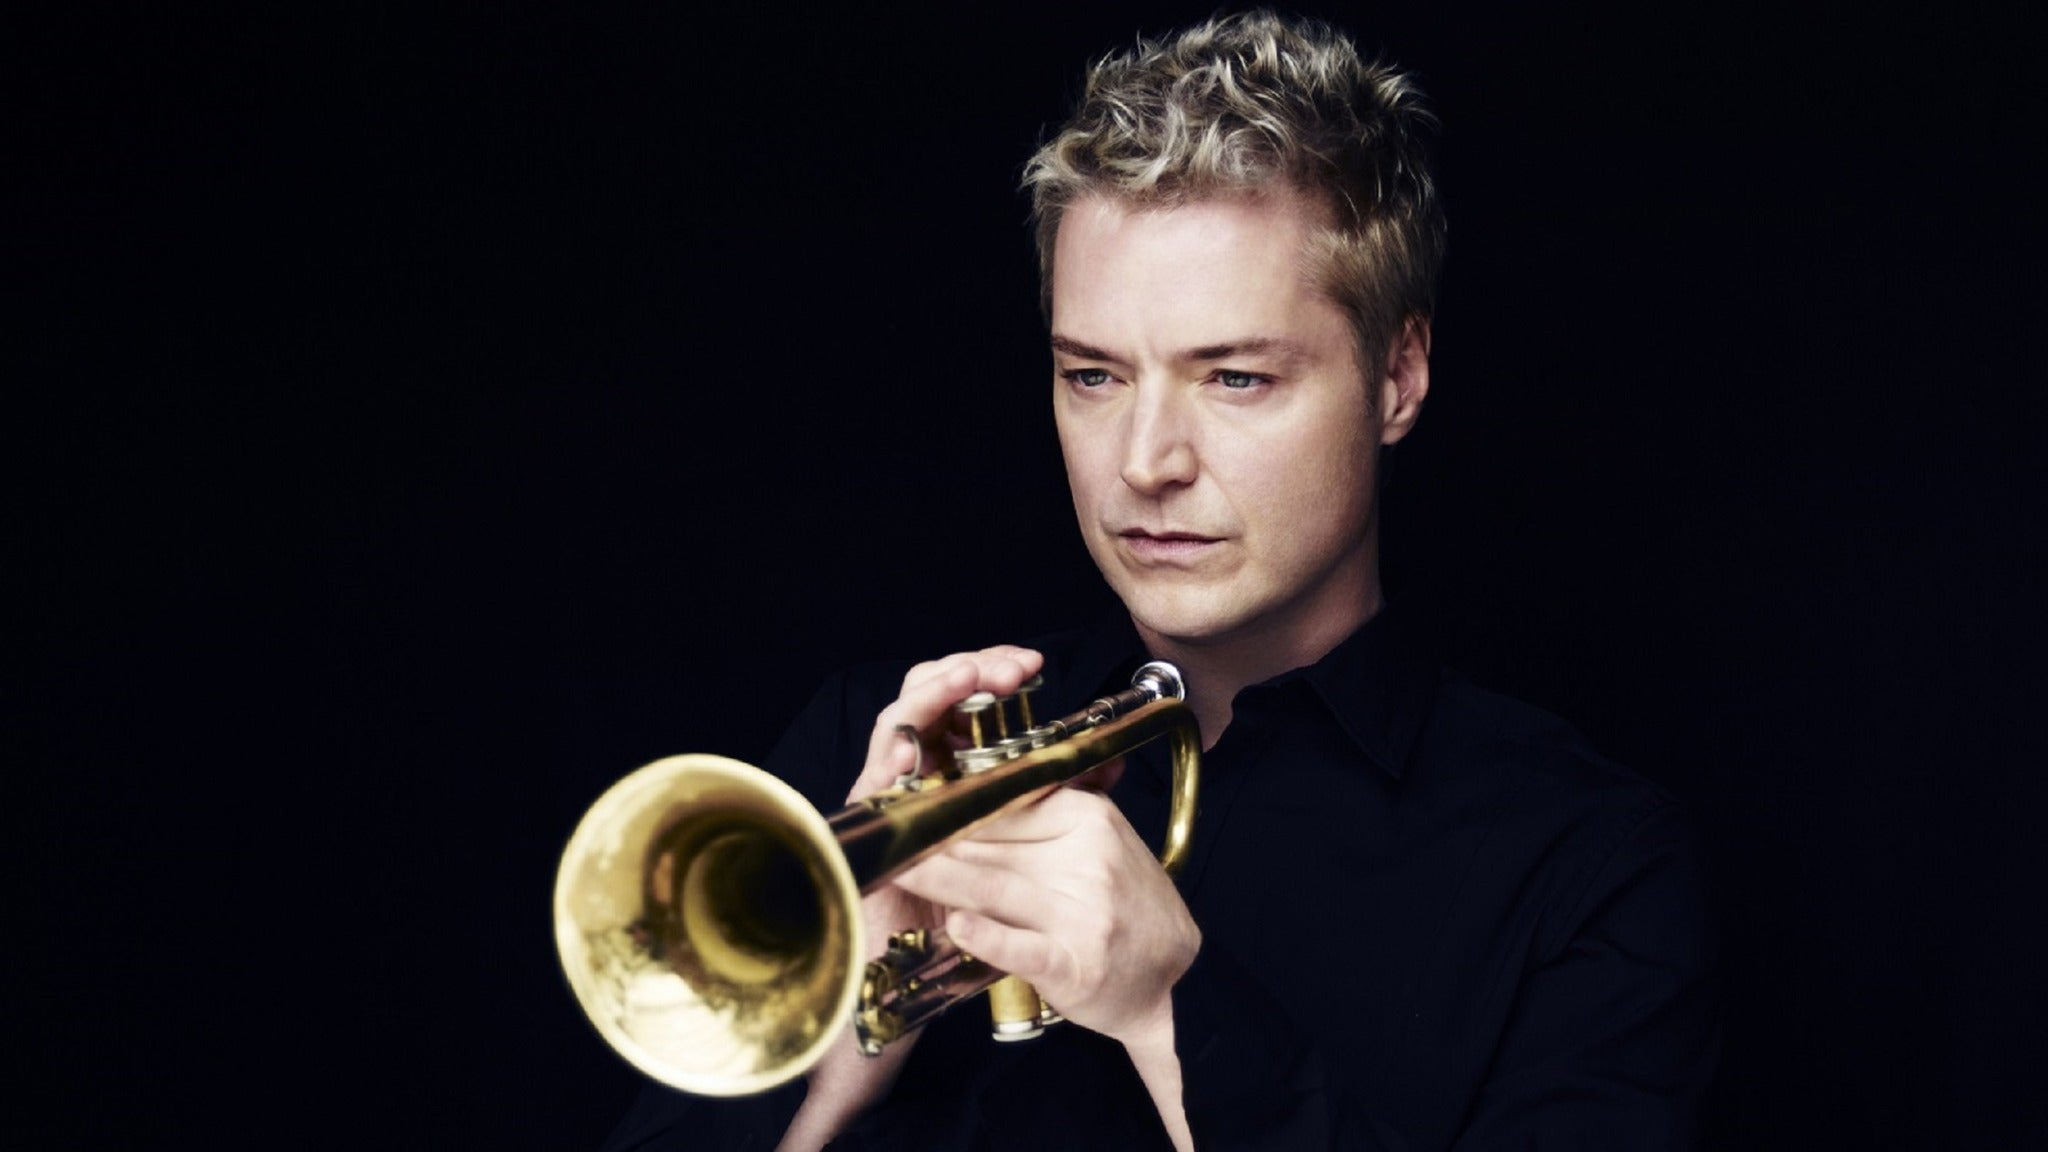 Chris Botti at California Center for the Arts - Concert Hall